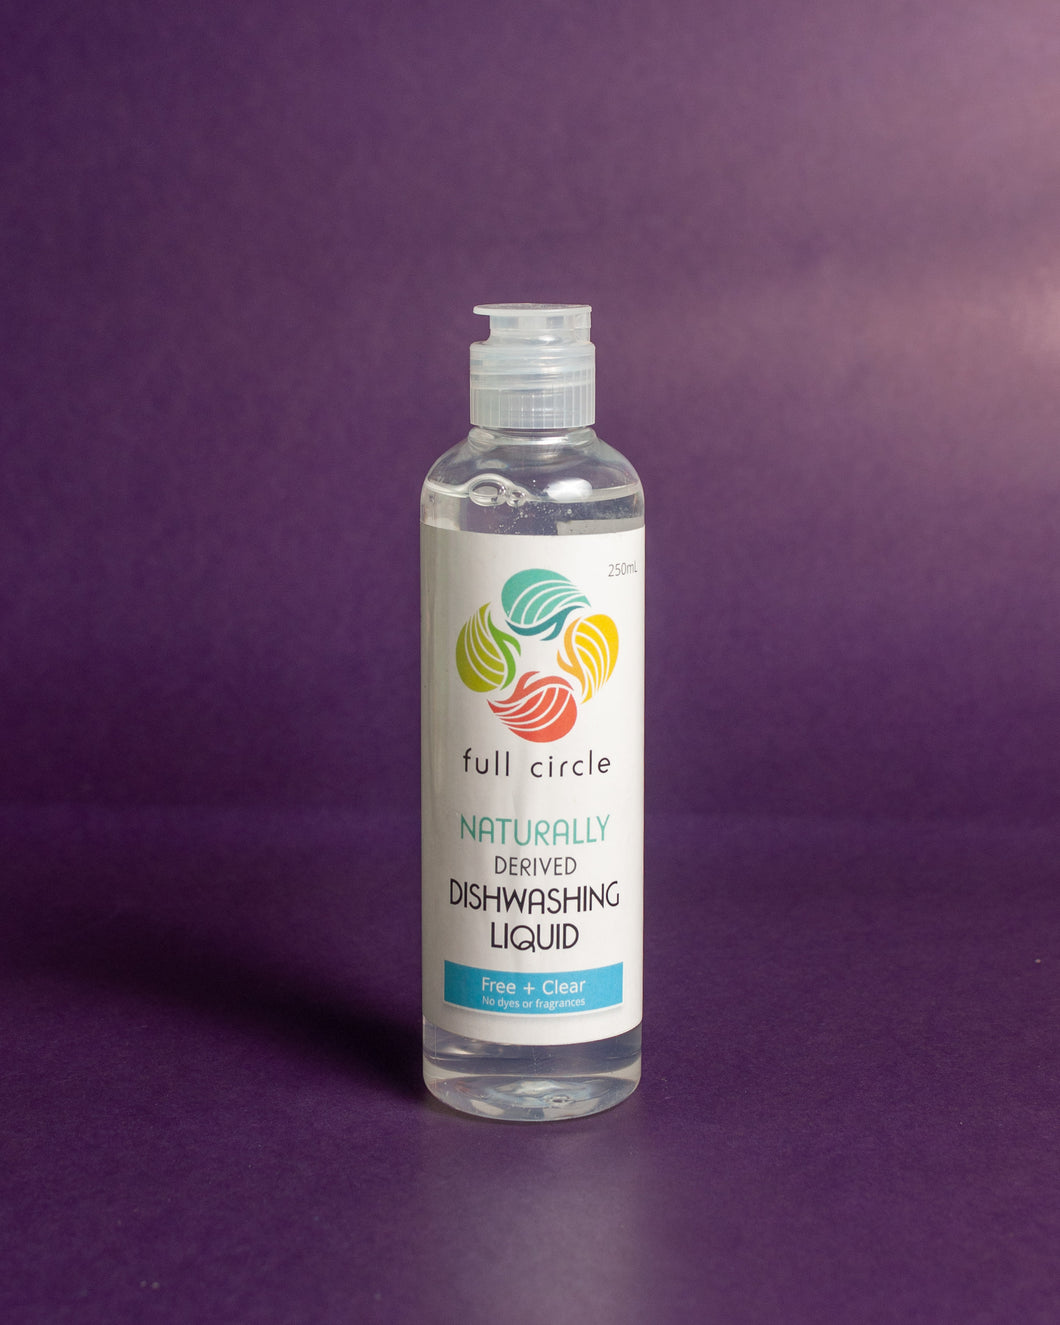 Naturally-derived Dishwashing Liquid